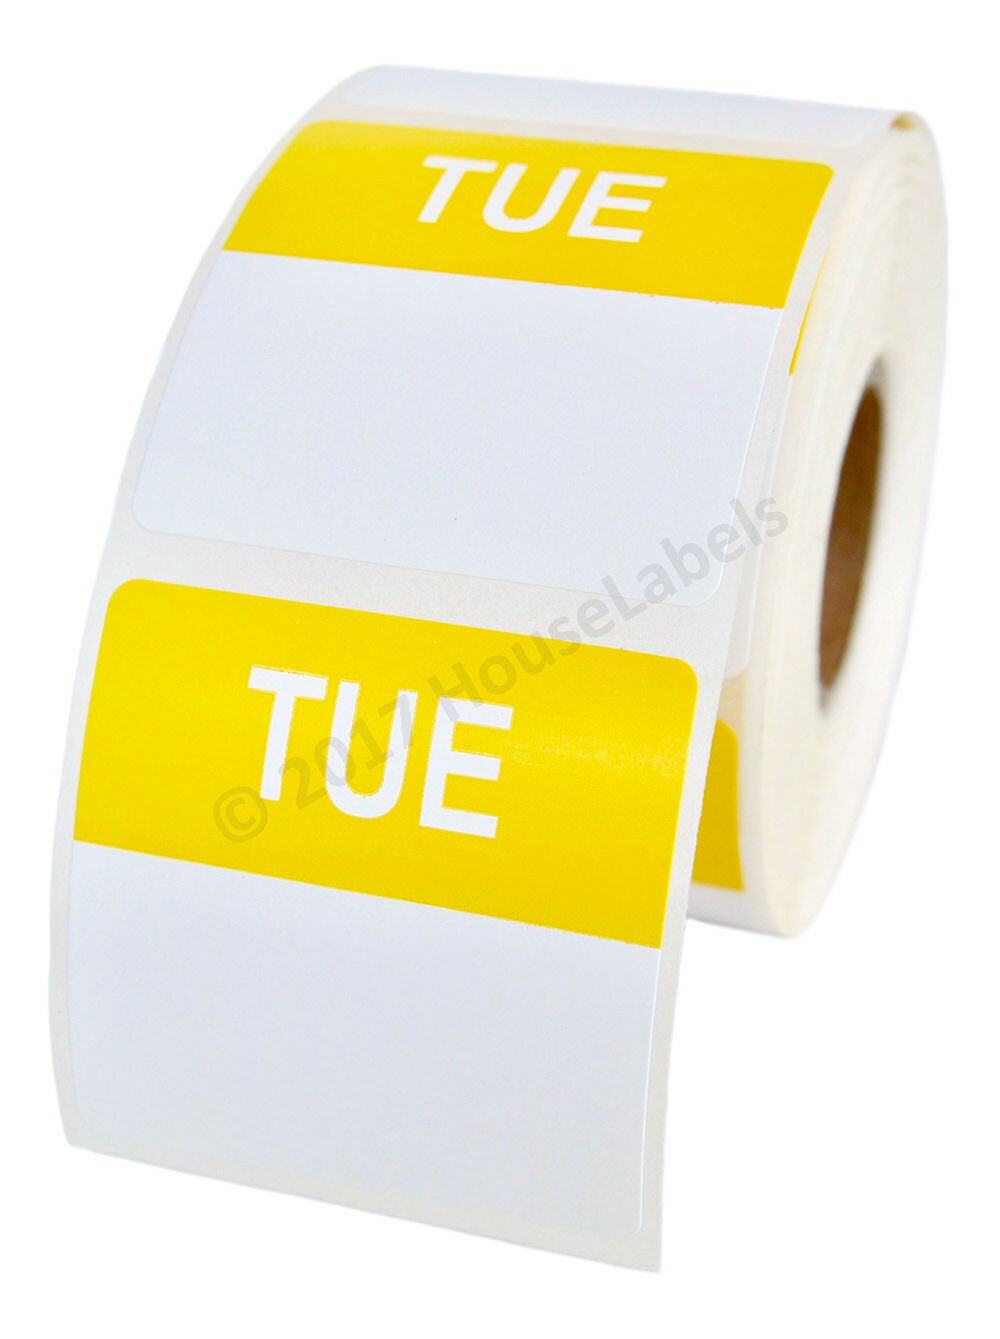 48 Rolls of Tuesday Day of the Week Labels (500 lbls roll, 40mmx40mm) BPA Free